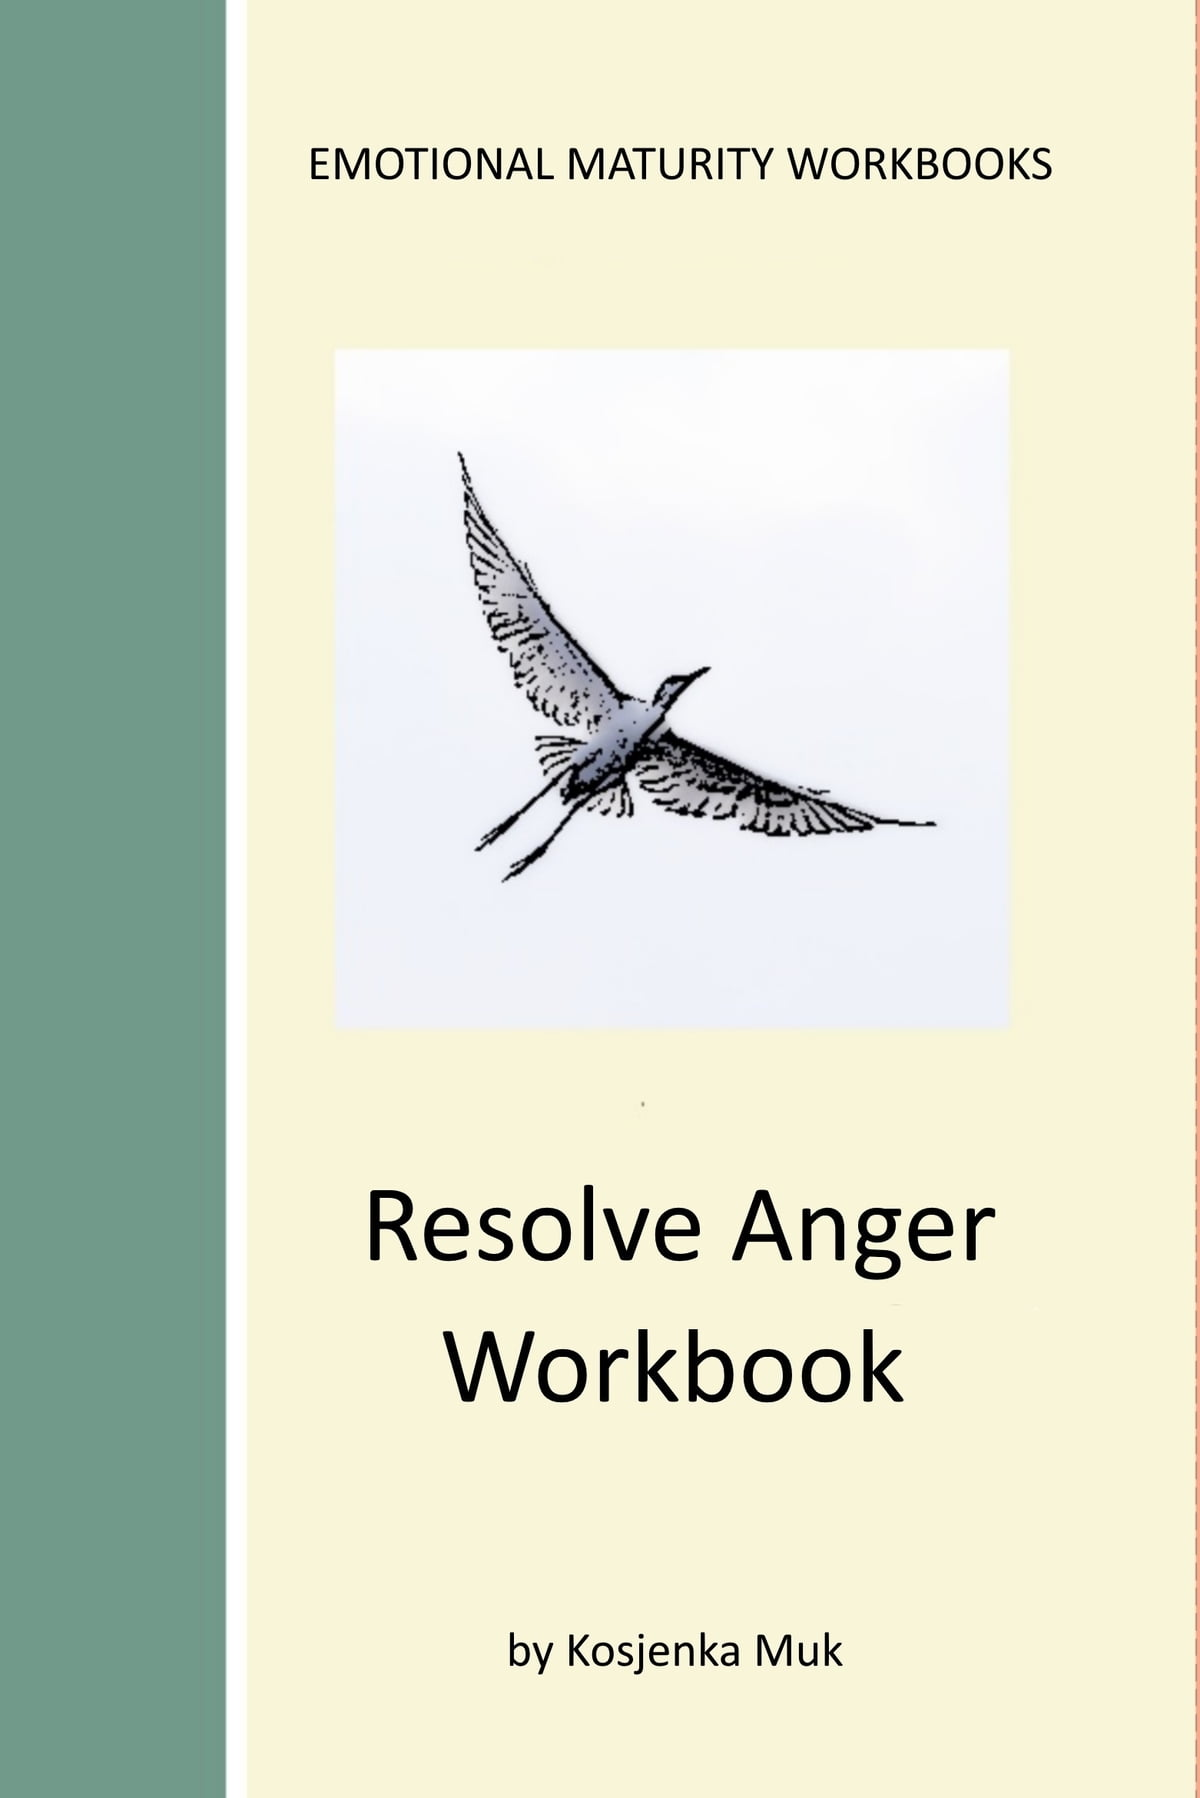 Workbooks anger workbook : Resolve Anger Workbook eBook by Kosjenka Muk - 9781311382993 ...